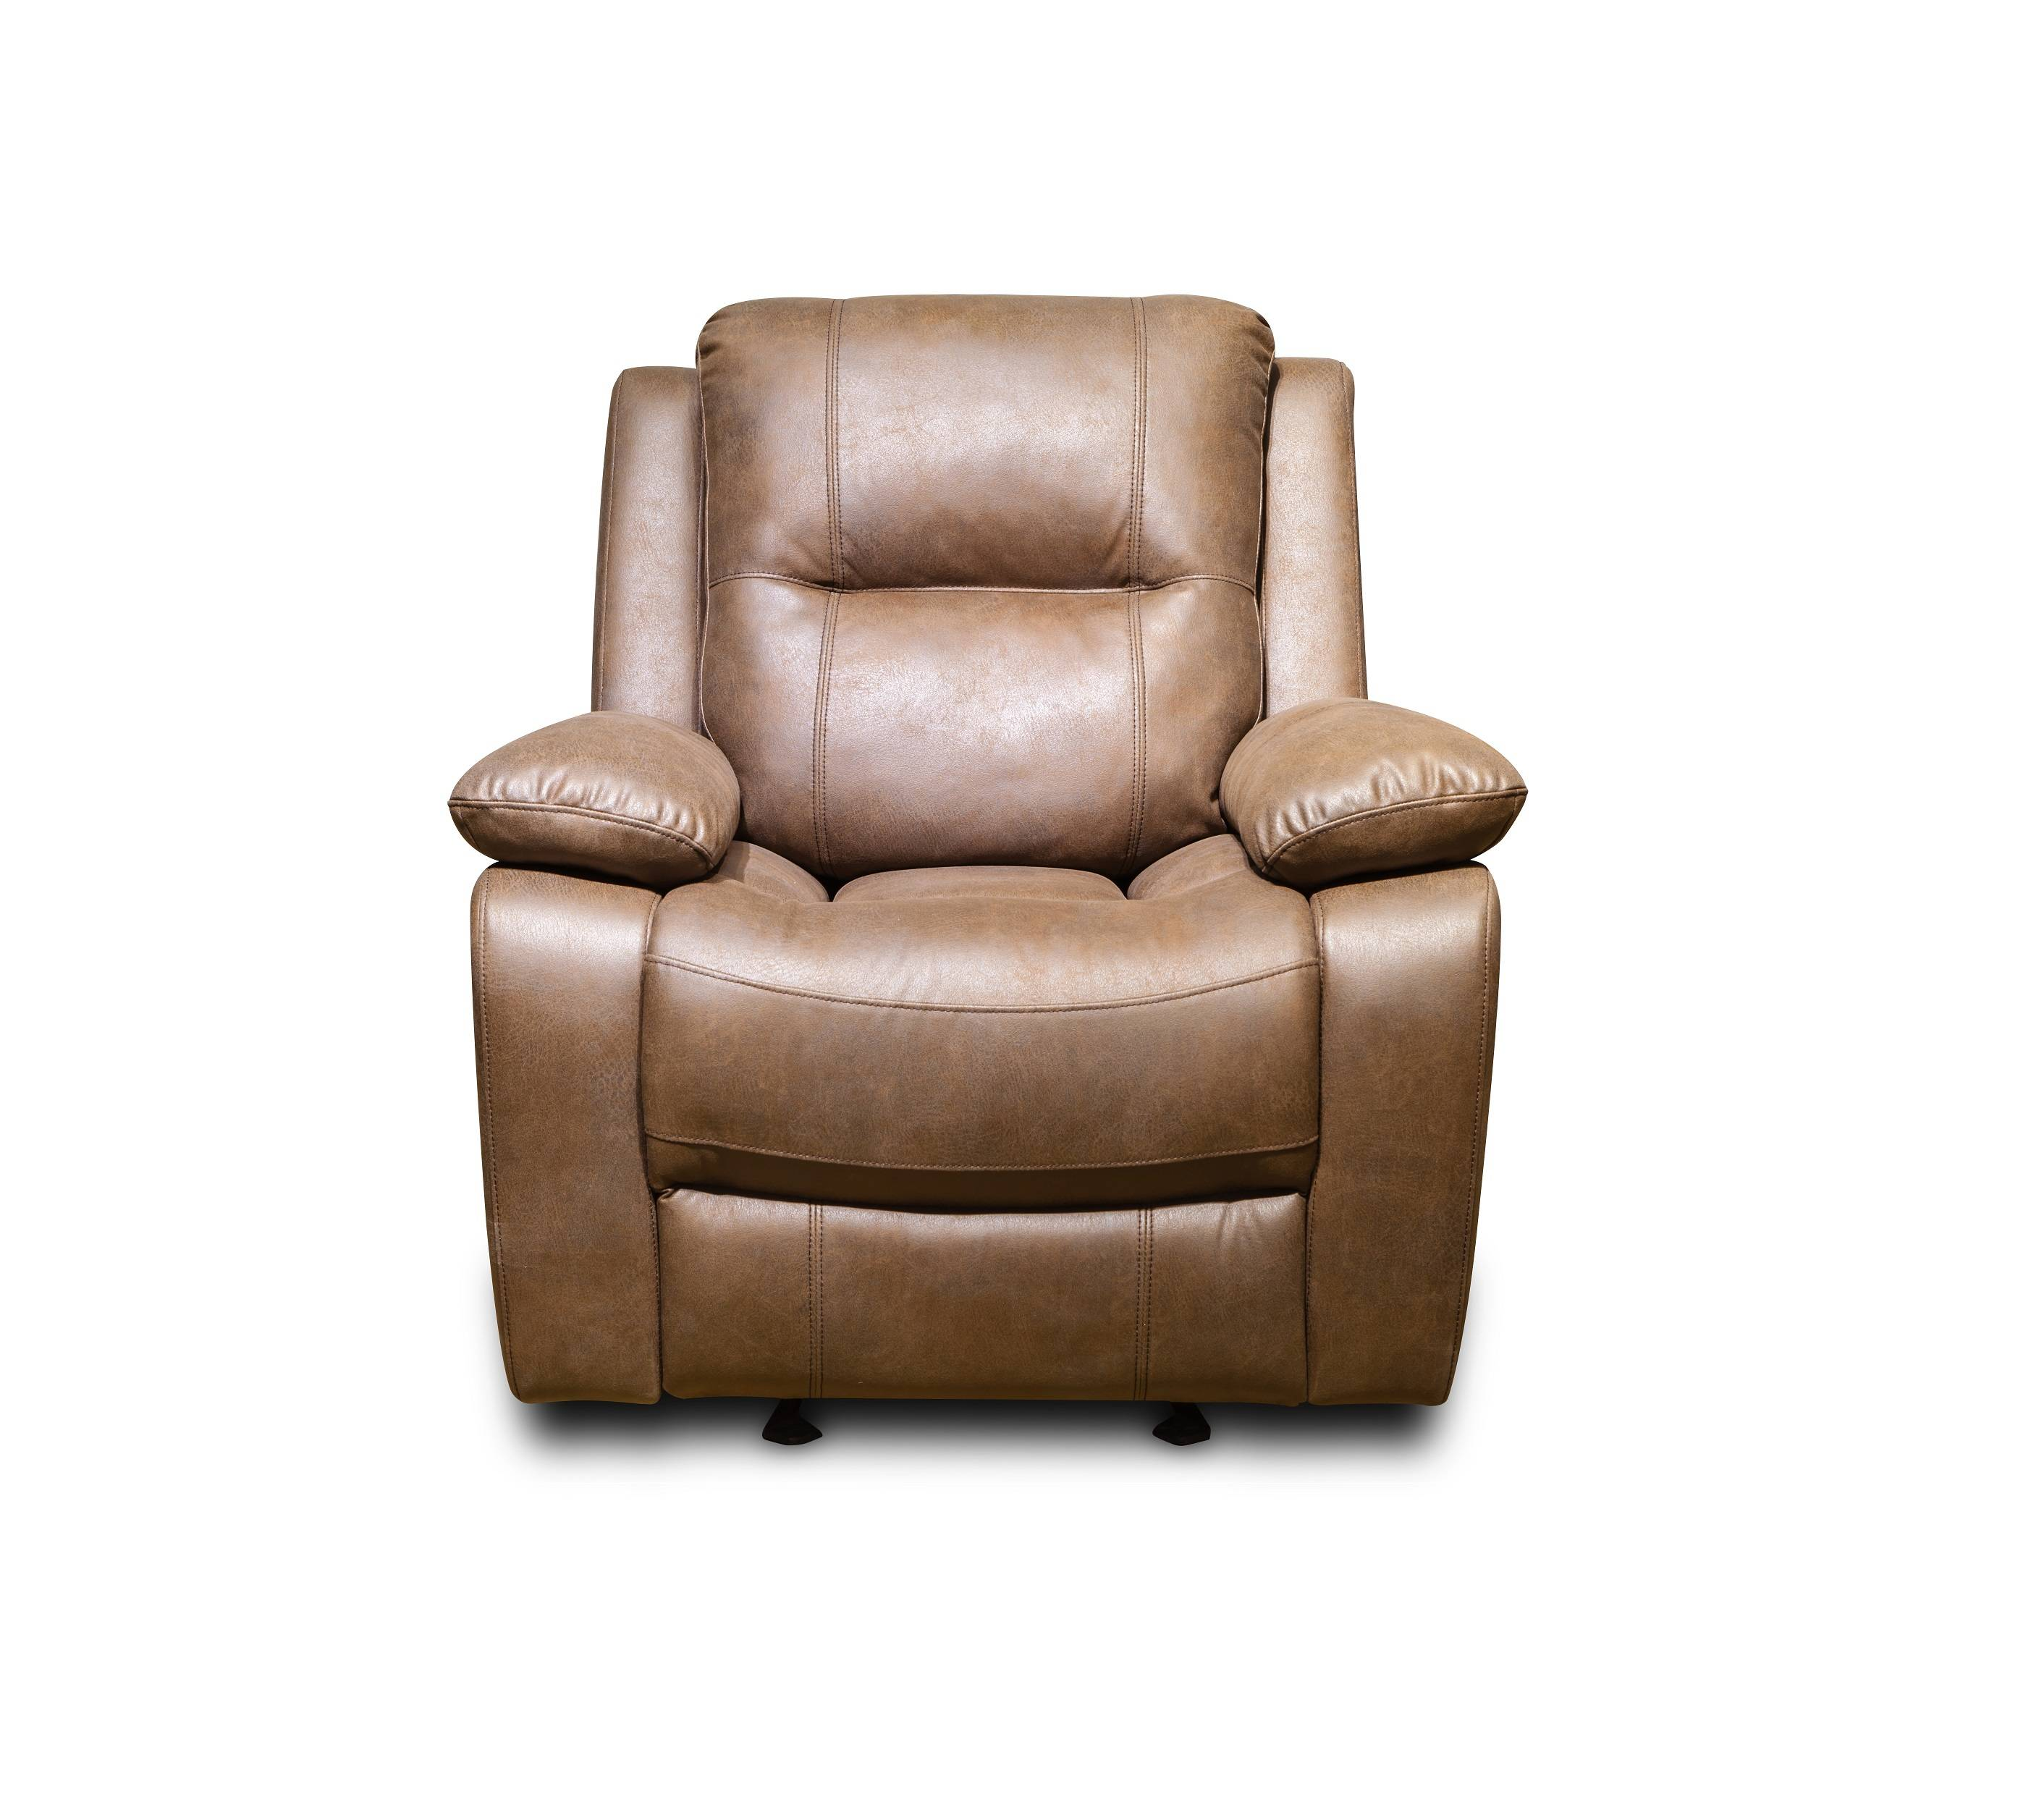 Modern comfortable high quality leather single recliner sofa chair